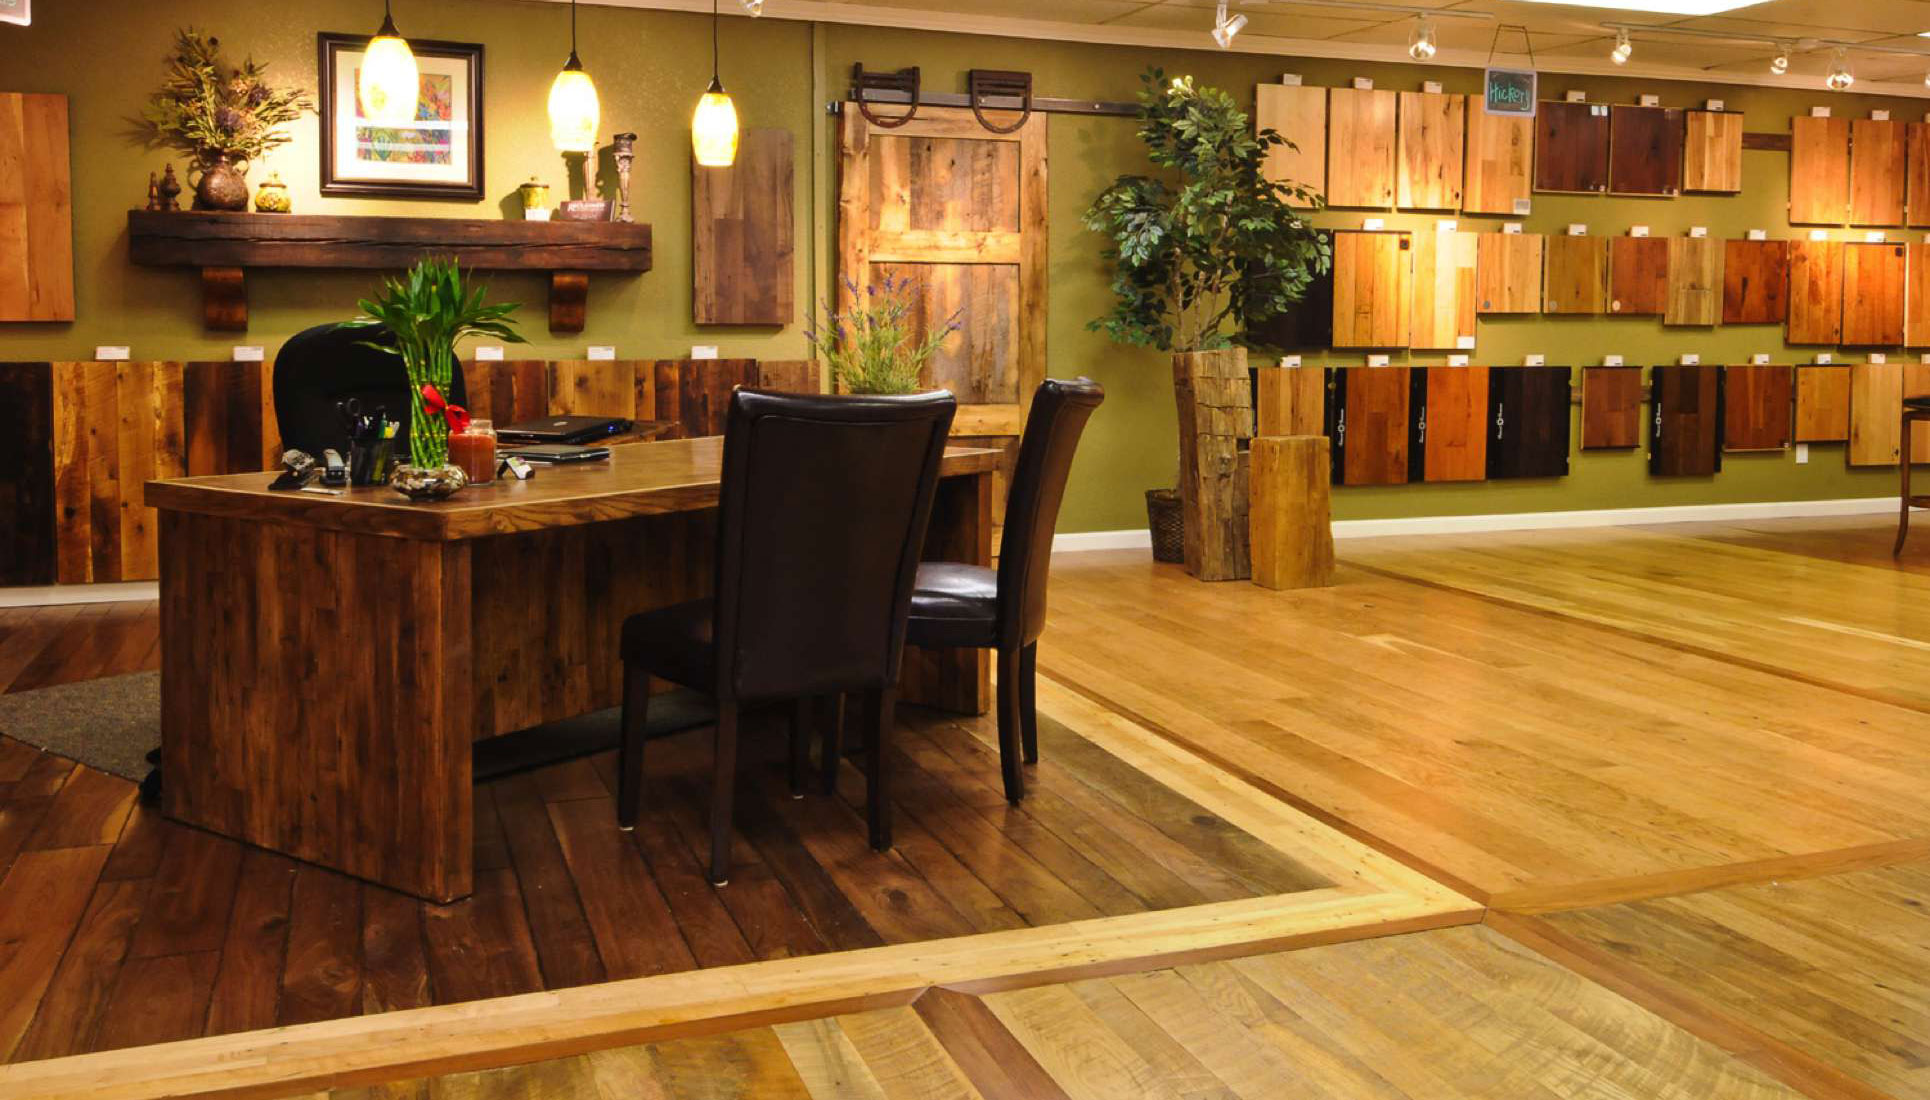 Visit our Denver show room and get help and inspiration for your next Colorado hardwood flooring project.